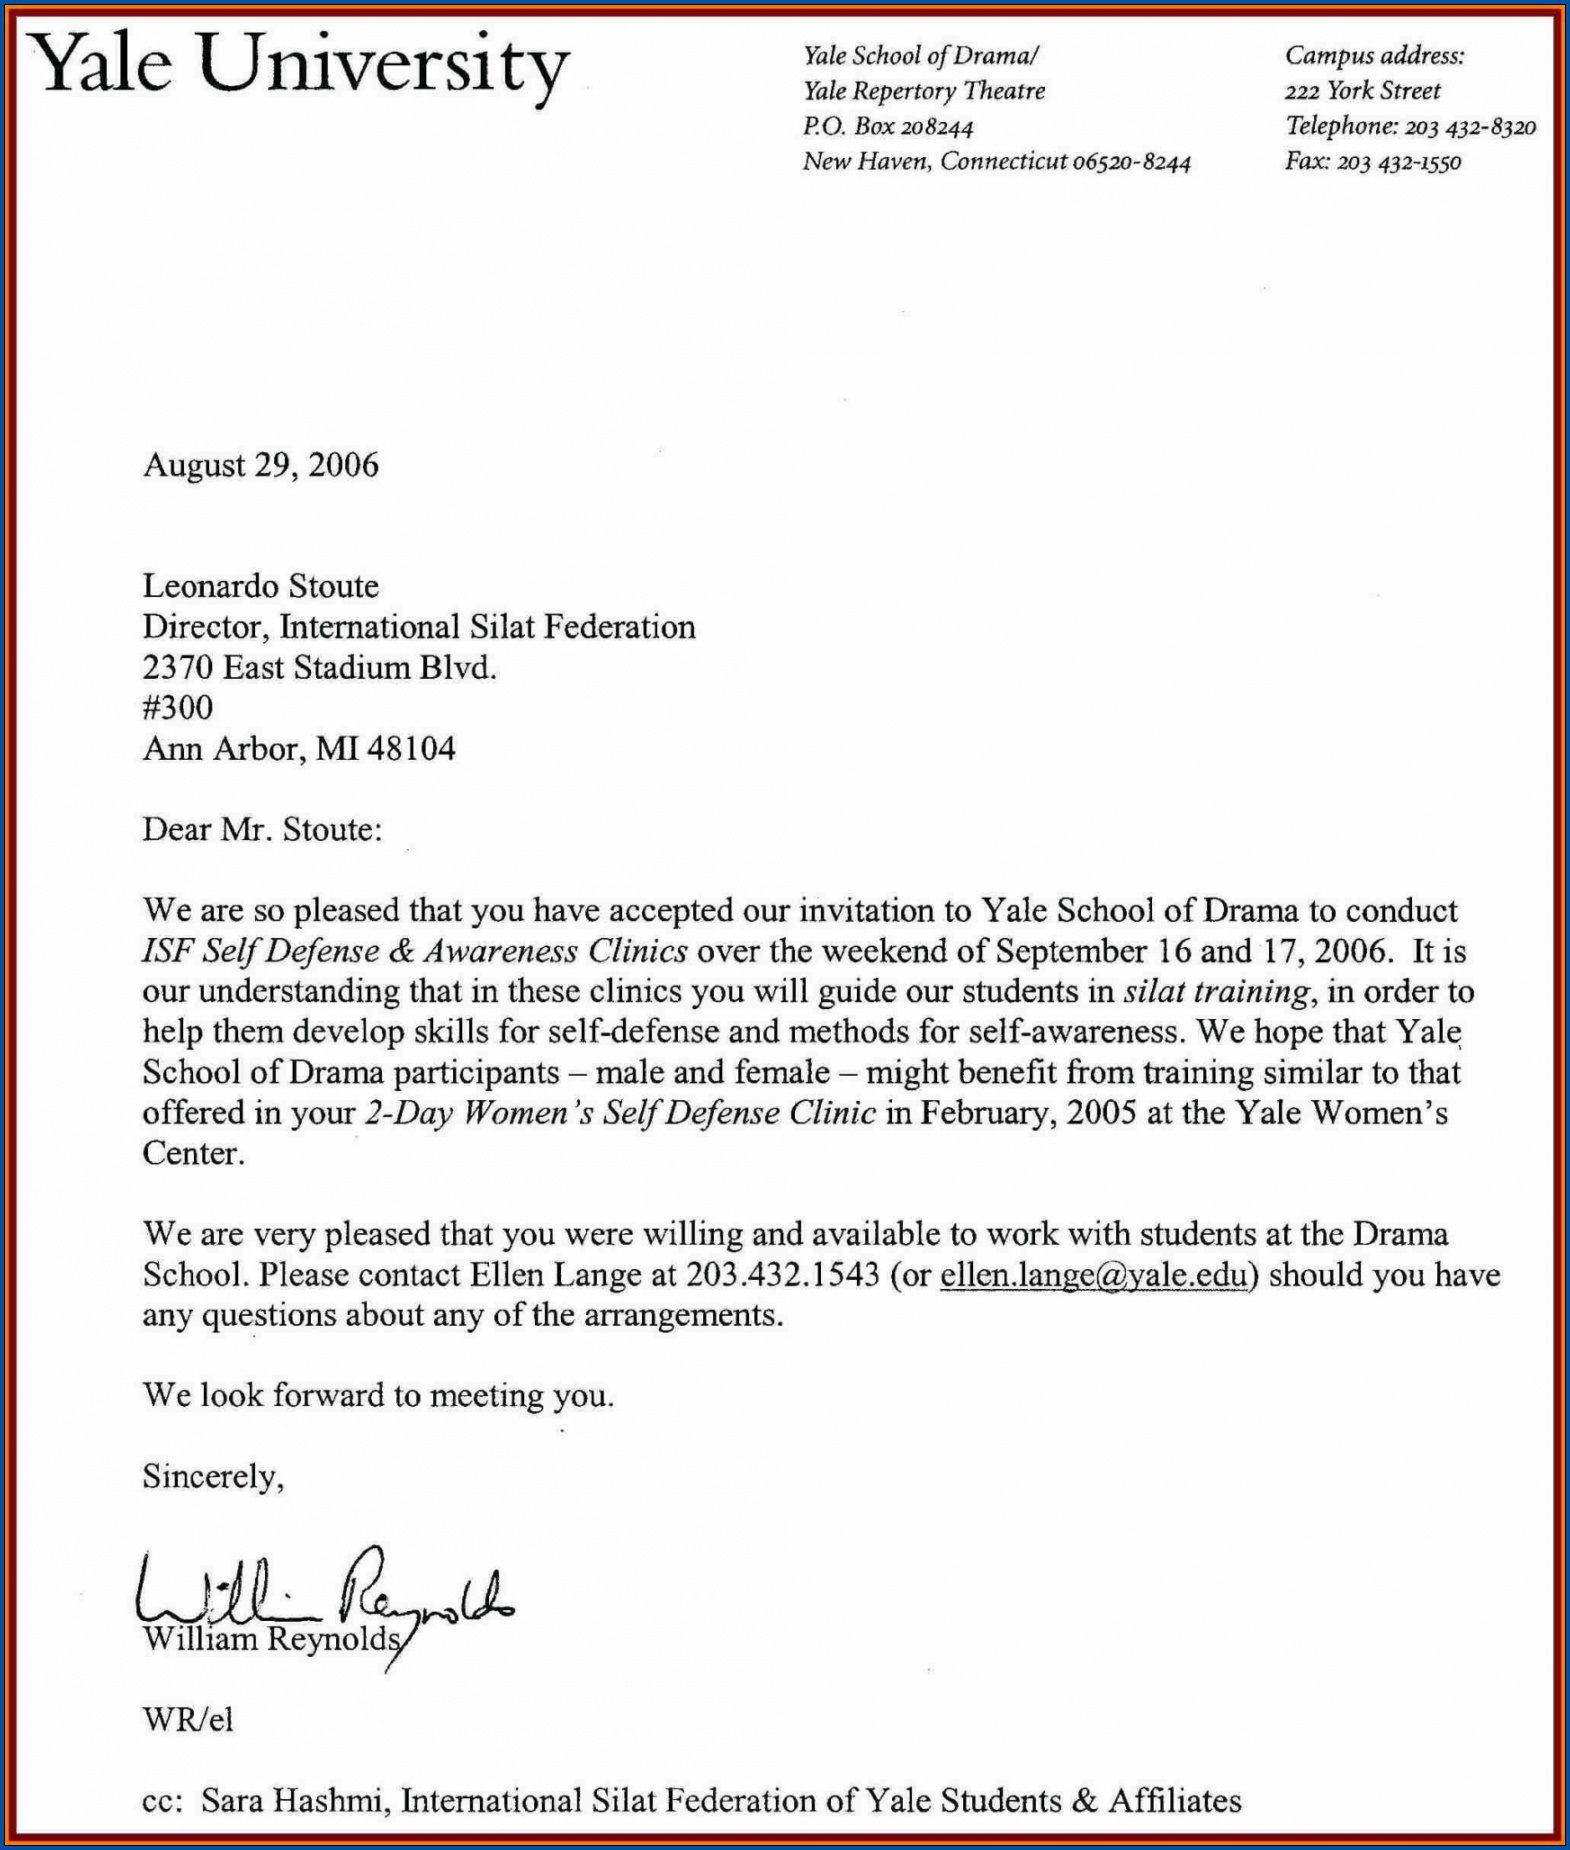 009 Remarkable College Letter Of Recommendation Template High Def  Writing Scholarship From EmployerFull